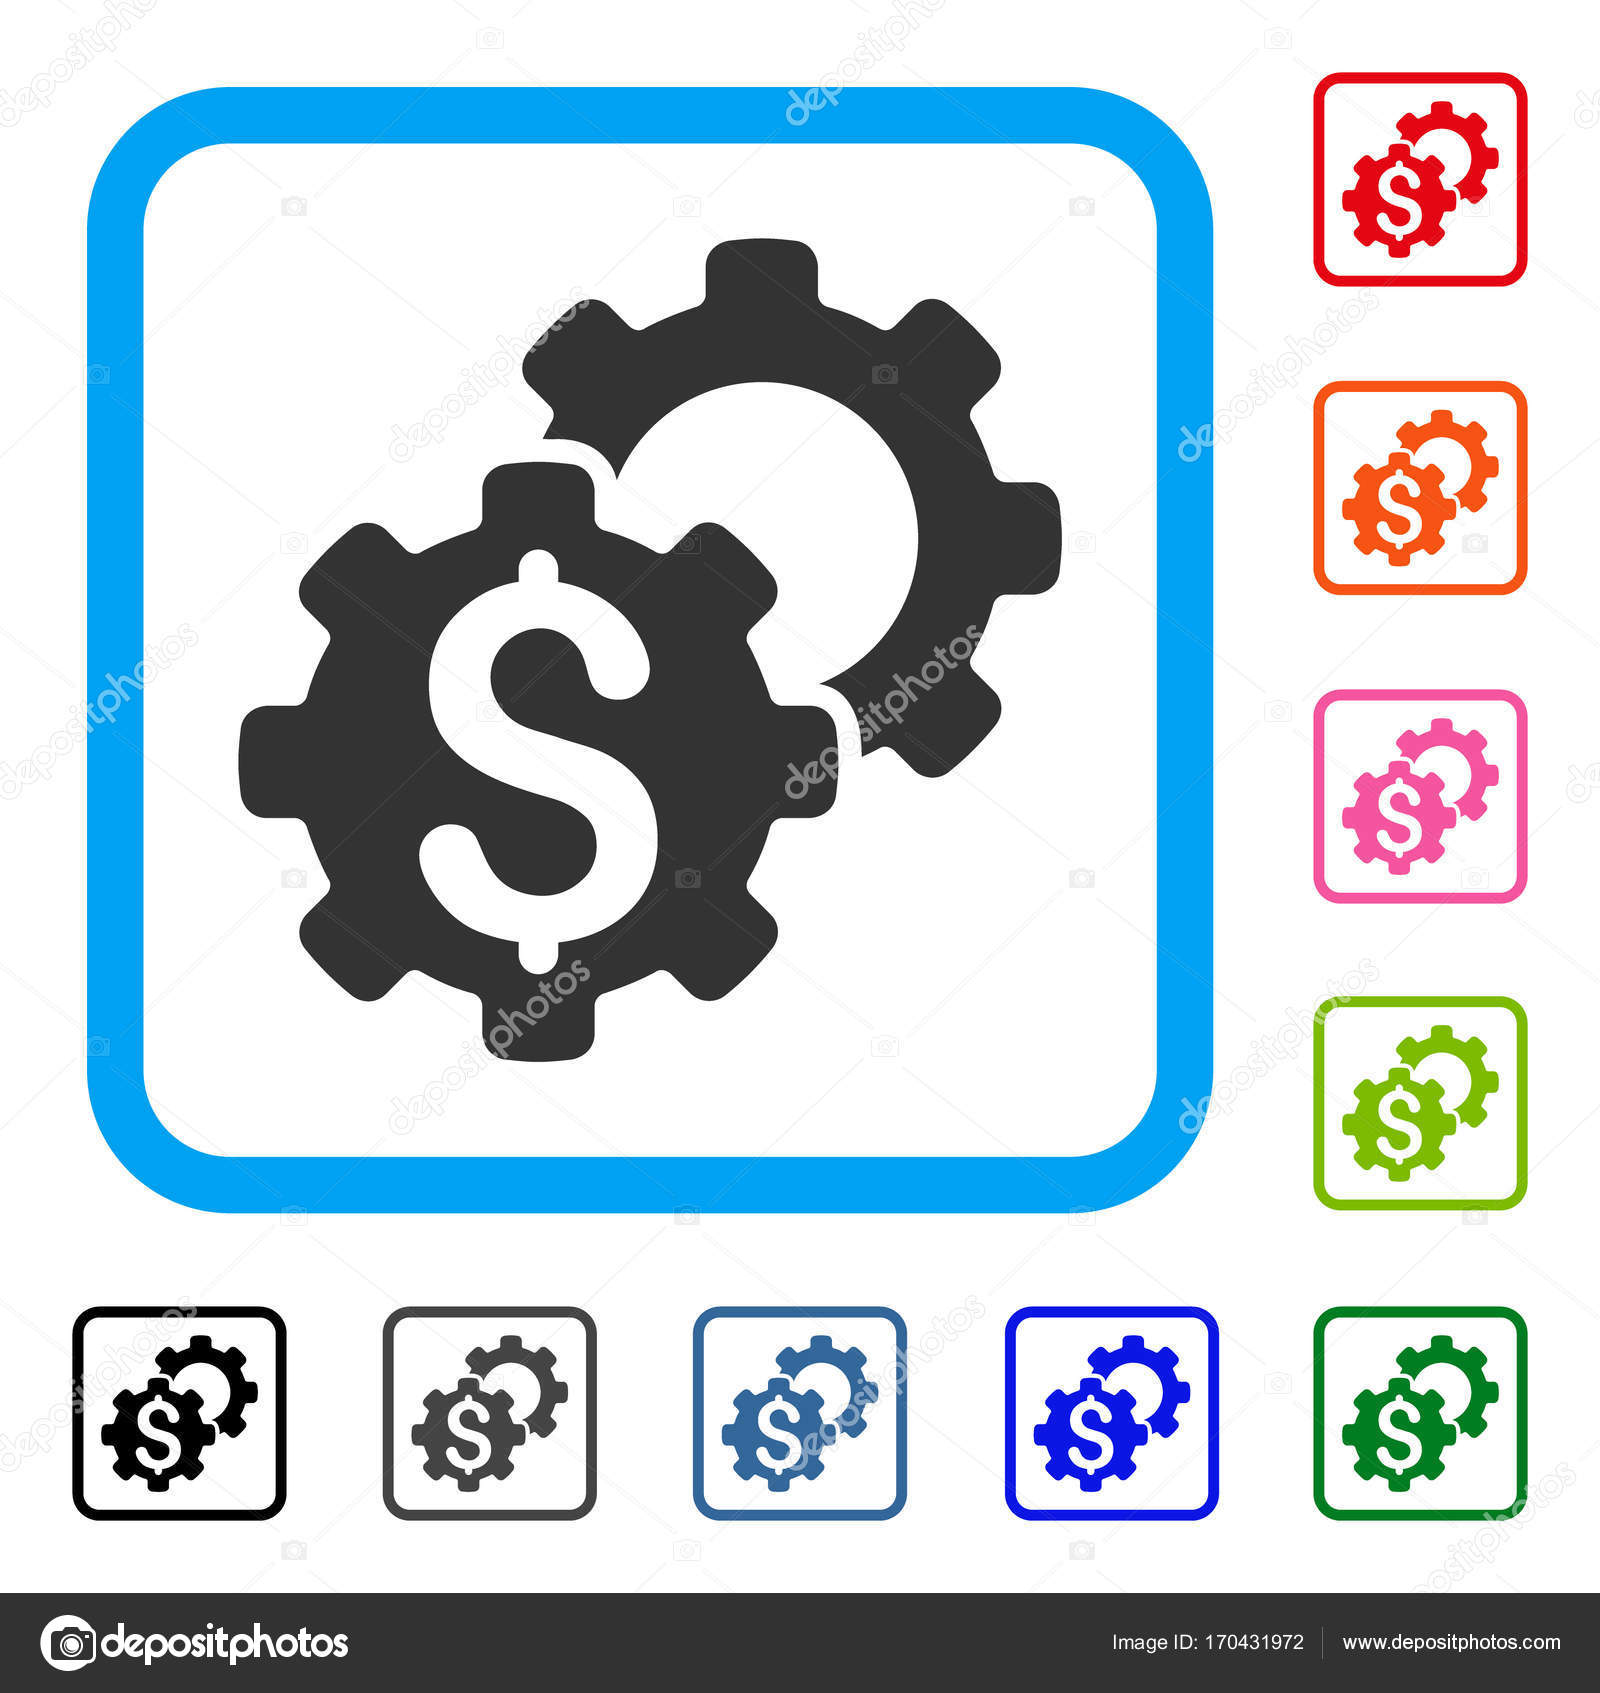 Bank settings framed icon stock vector ahasoft 170431972 bank settings icon flat grey pictogram symbol in a light blue rounded rectangle black gray green blue red orange color additional versions of bank biocorpaavc Gallery